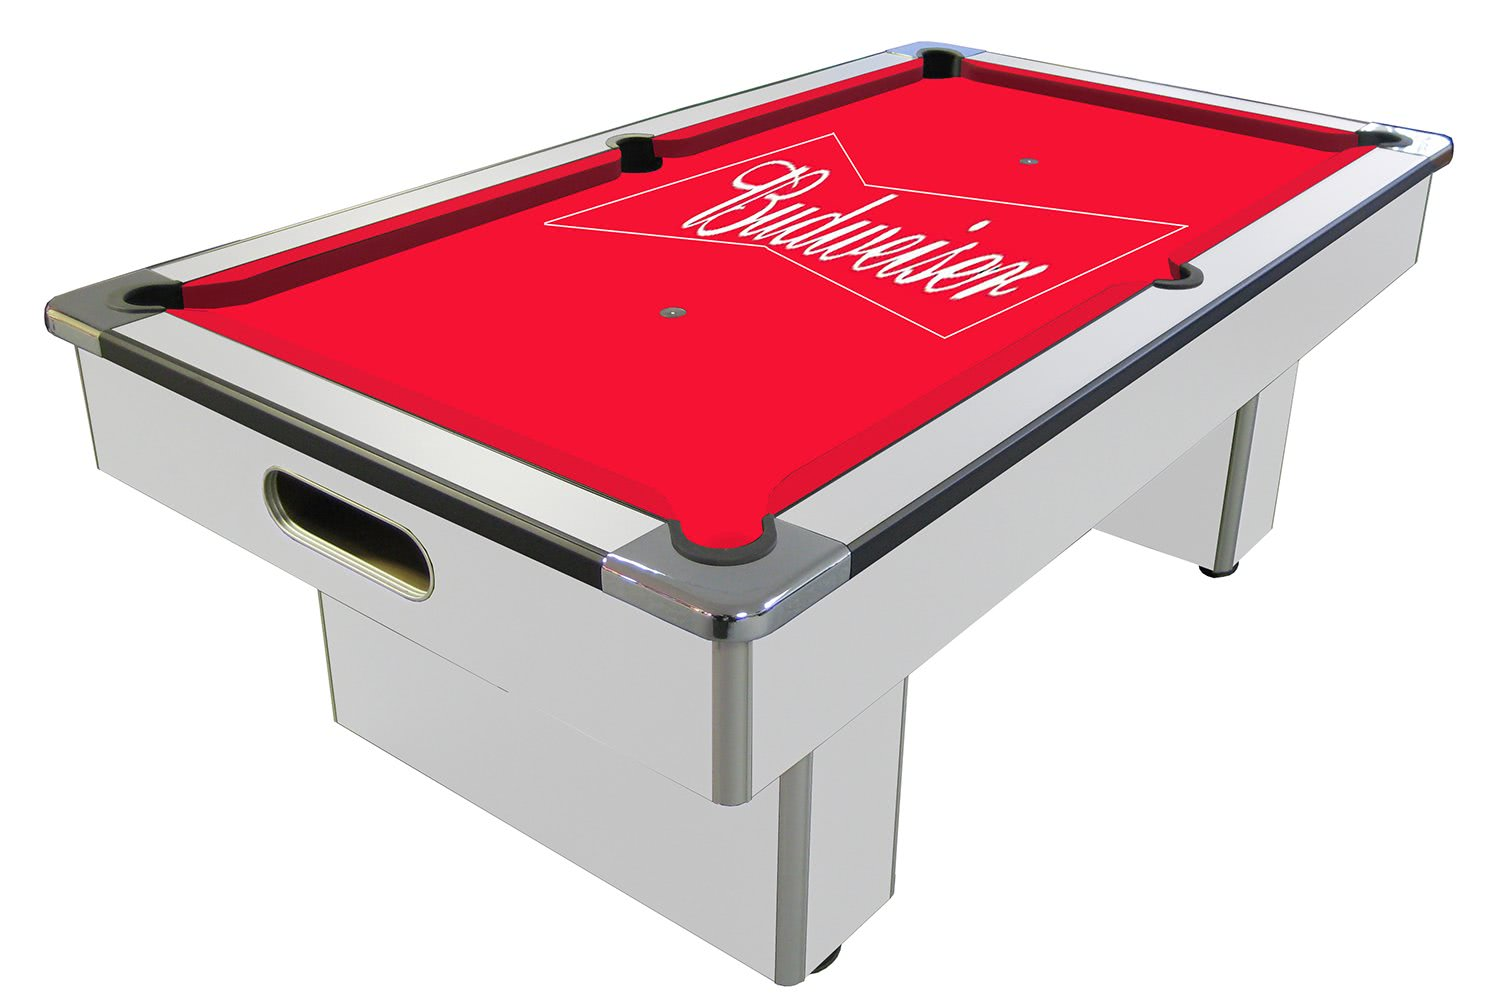 Budweiser Slate Bed Pool Table 6 Ft 7 Ft Liberty Games